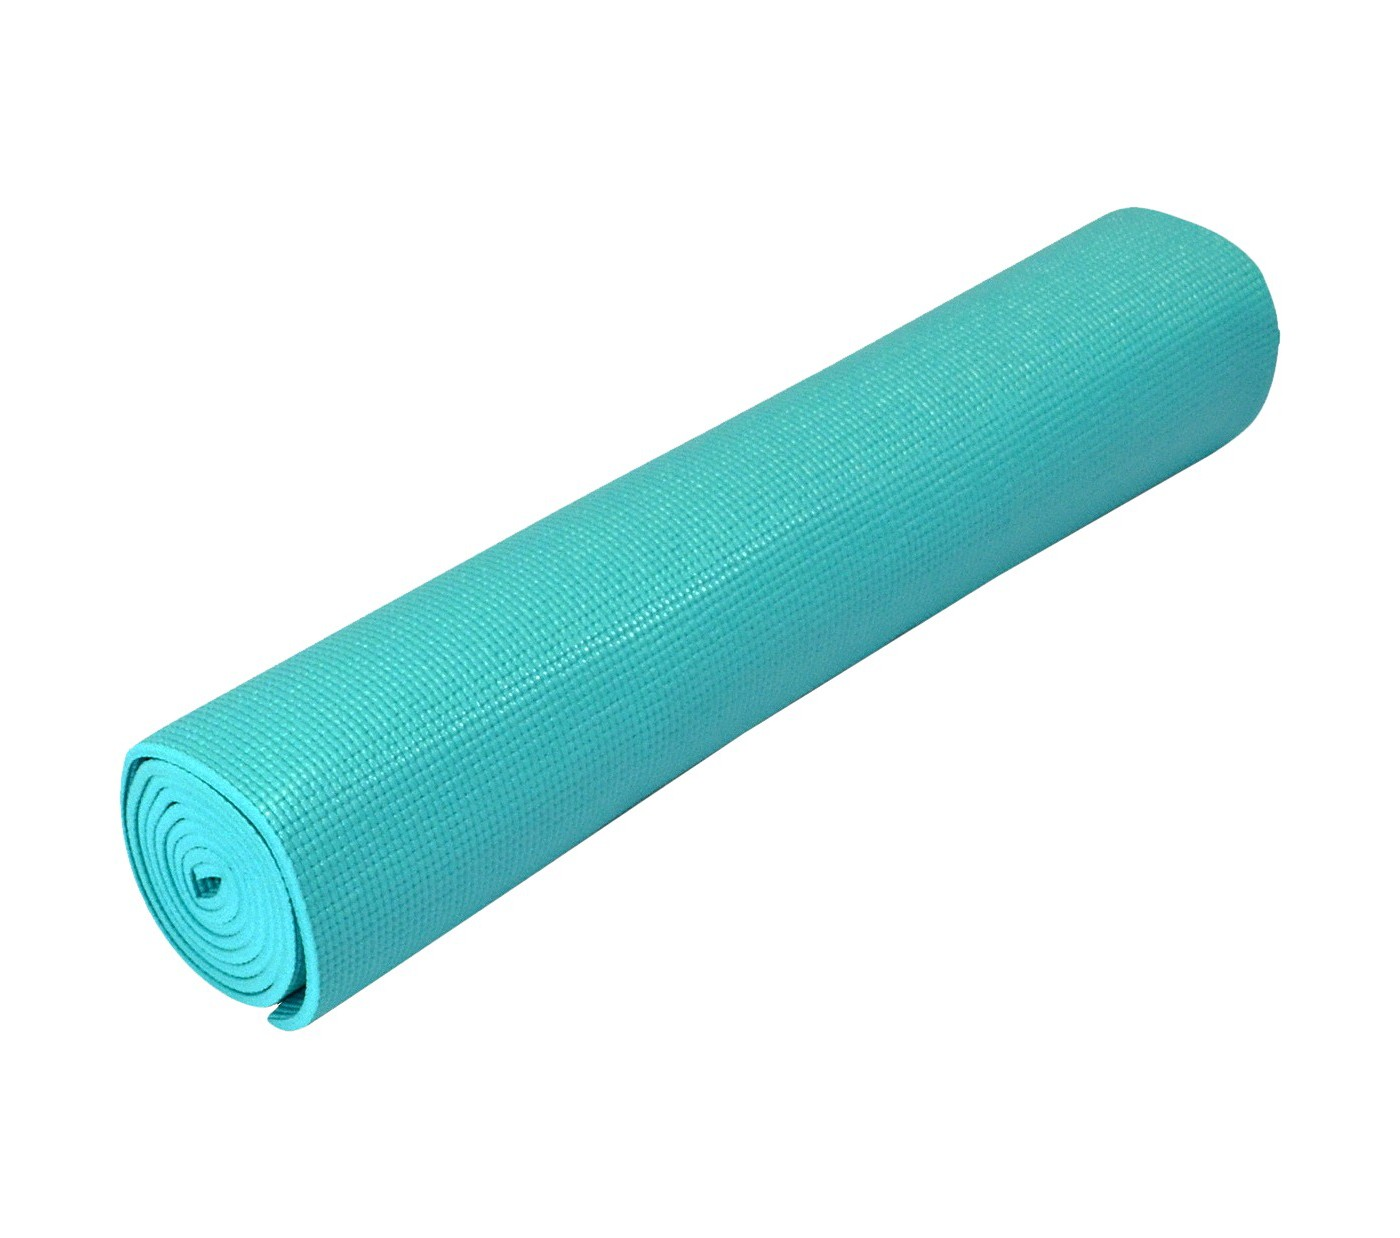 "Yoga Direct® Yoga Mat (1/4"") - image 1 of 1"